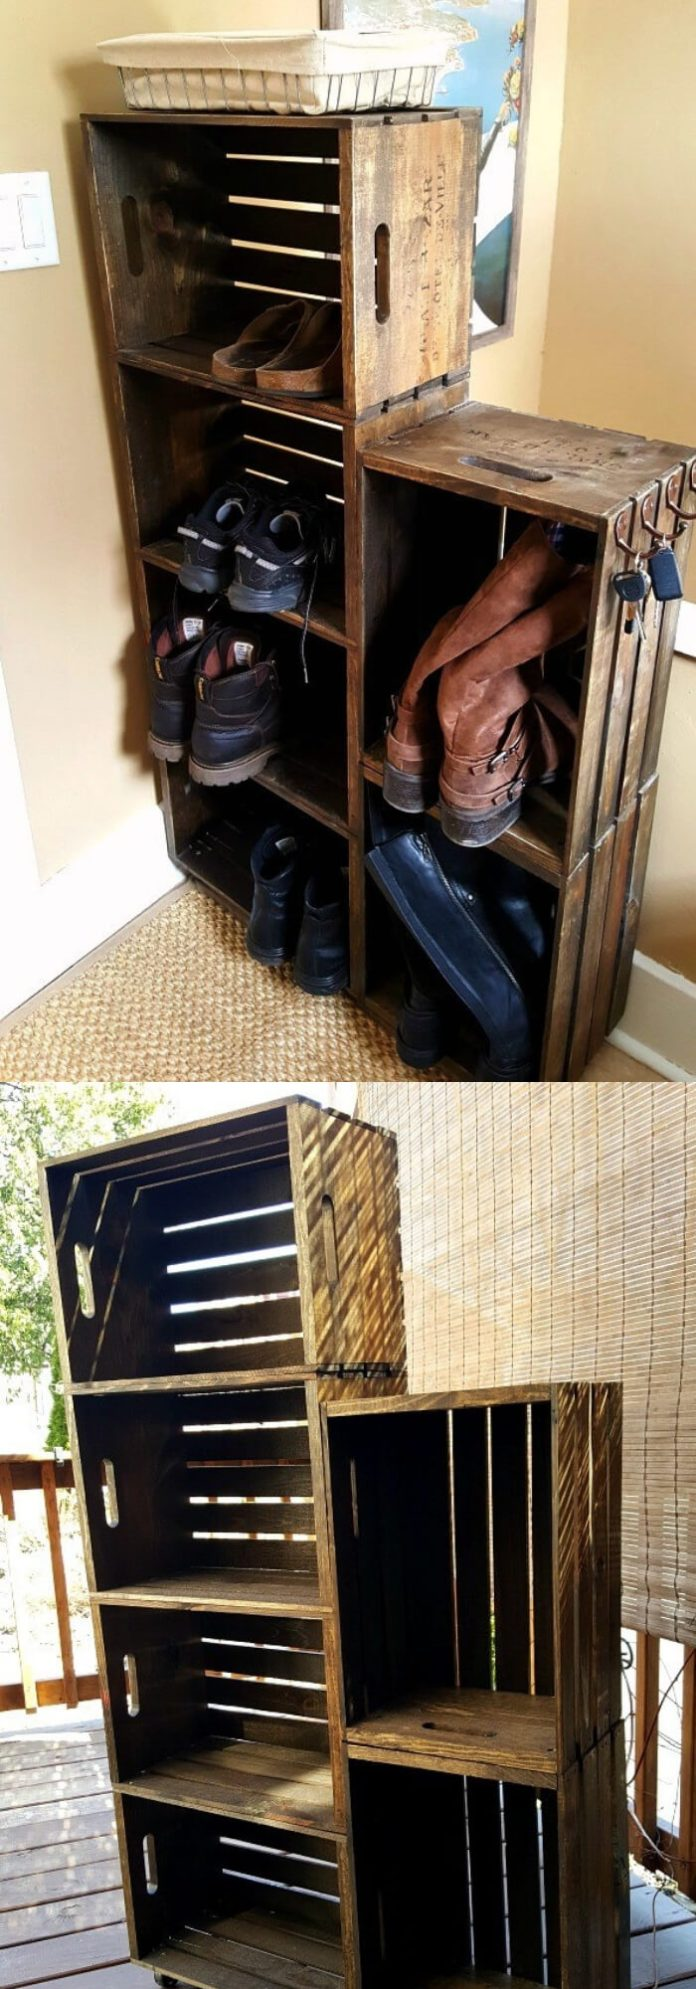 Wooden Crate Shoe Rack | Smart Shoe Storage Ideas & Designs For Any Zoom Size